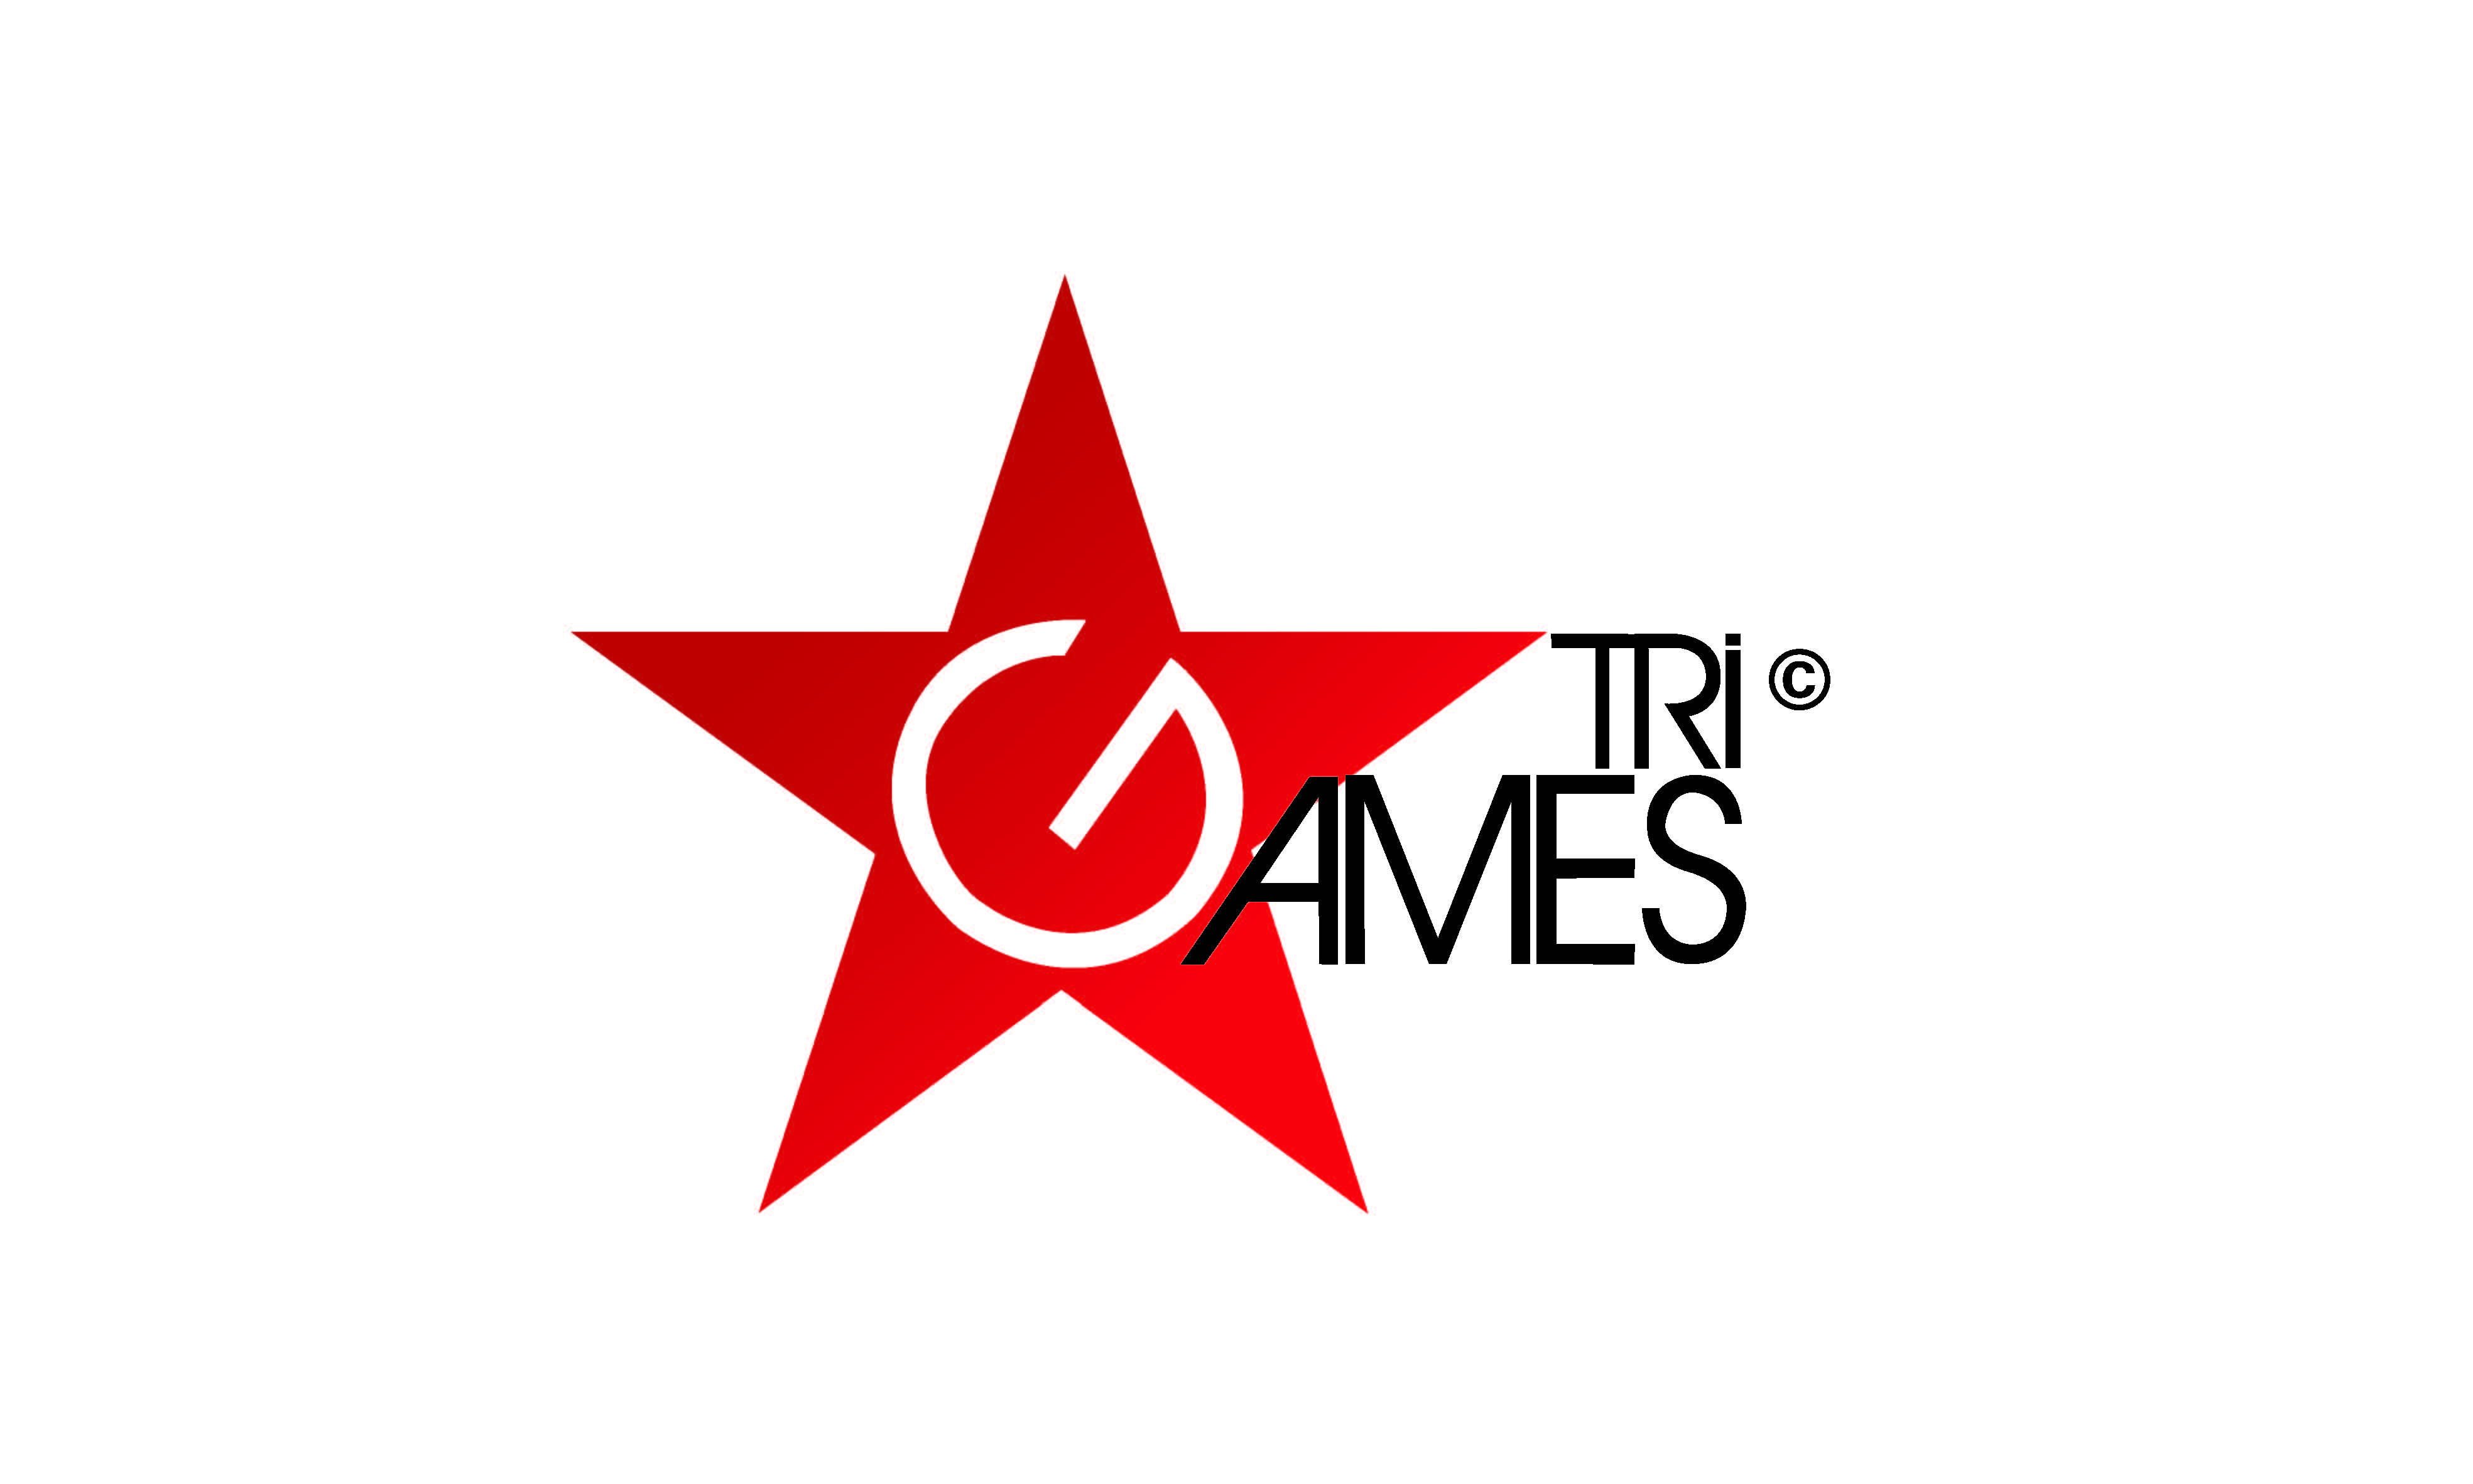 TRIGAMES